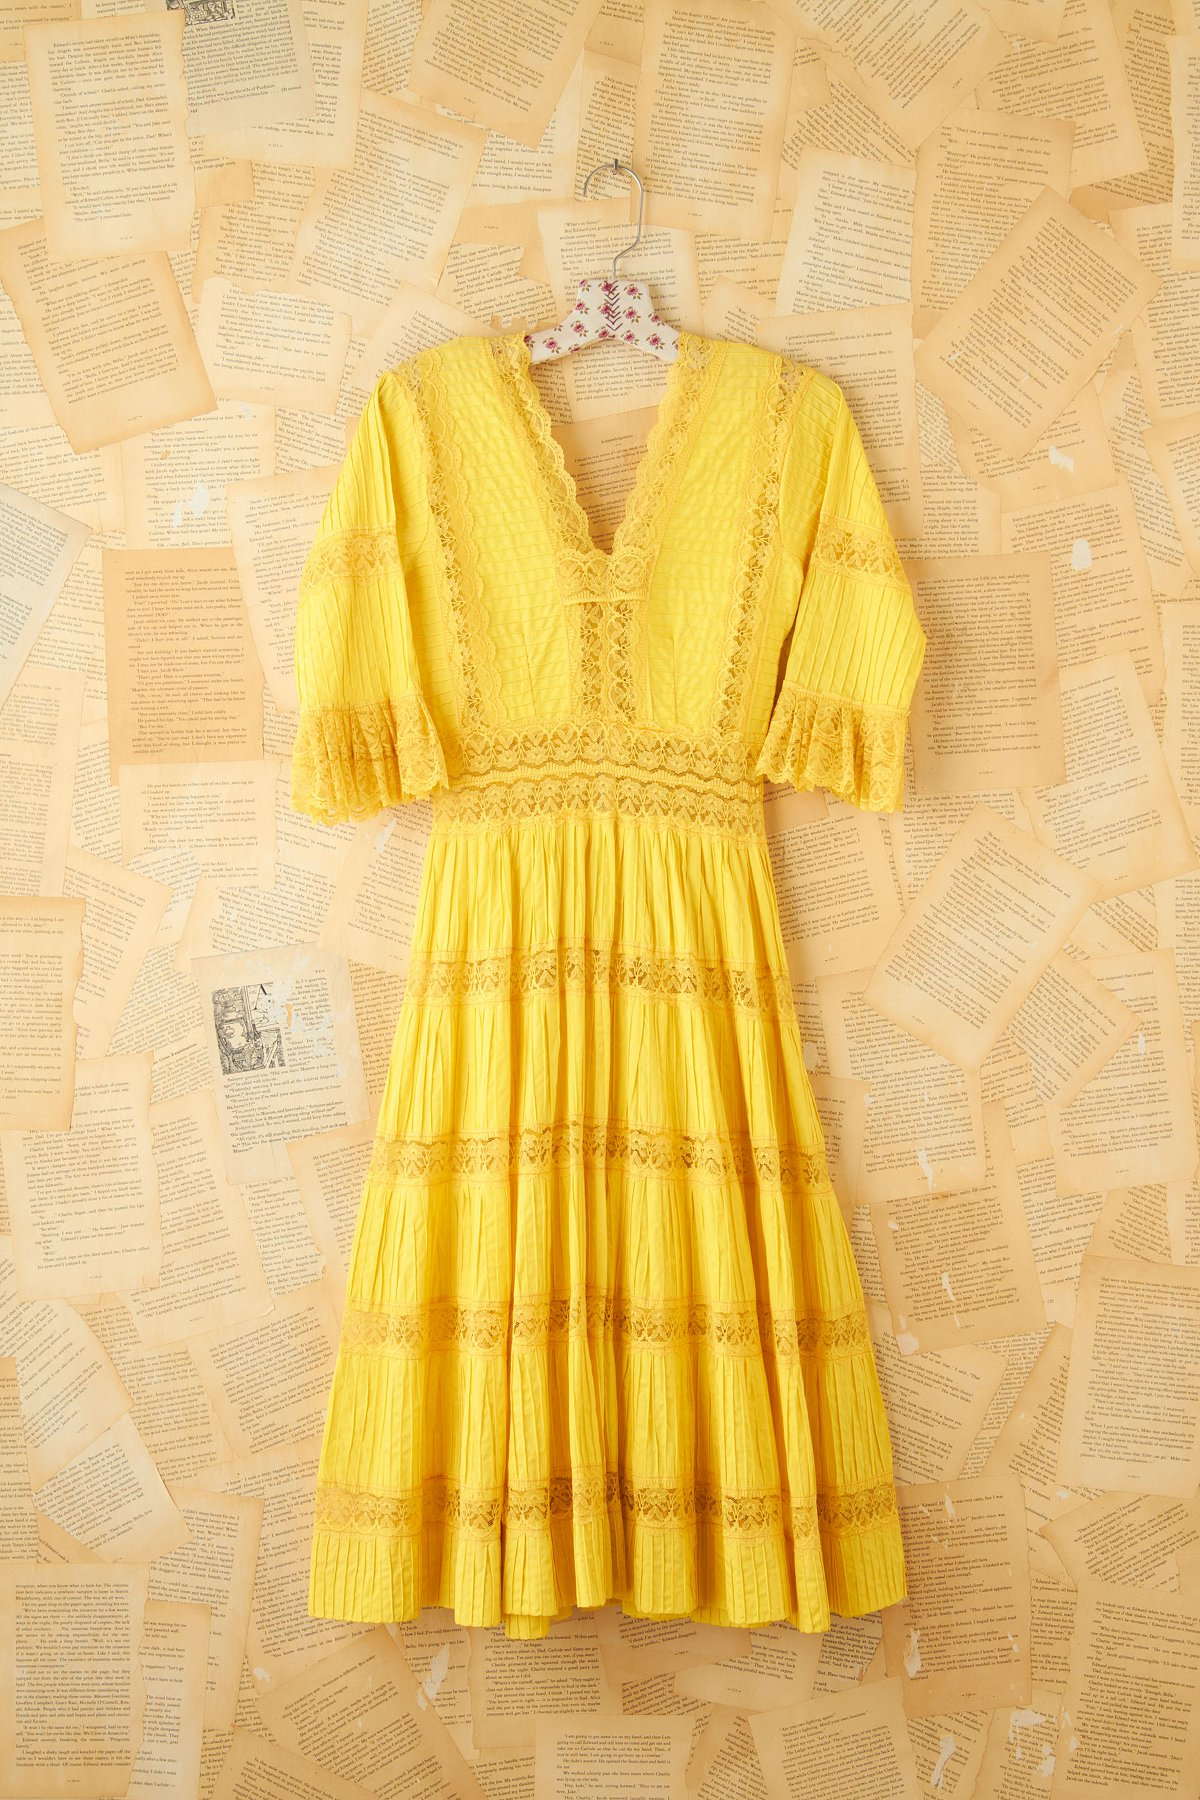 Vintage 1950s Yellow Pleated Maxi Dress